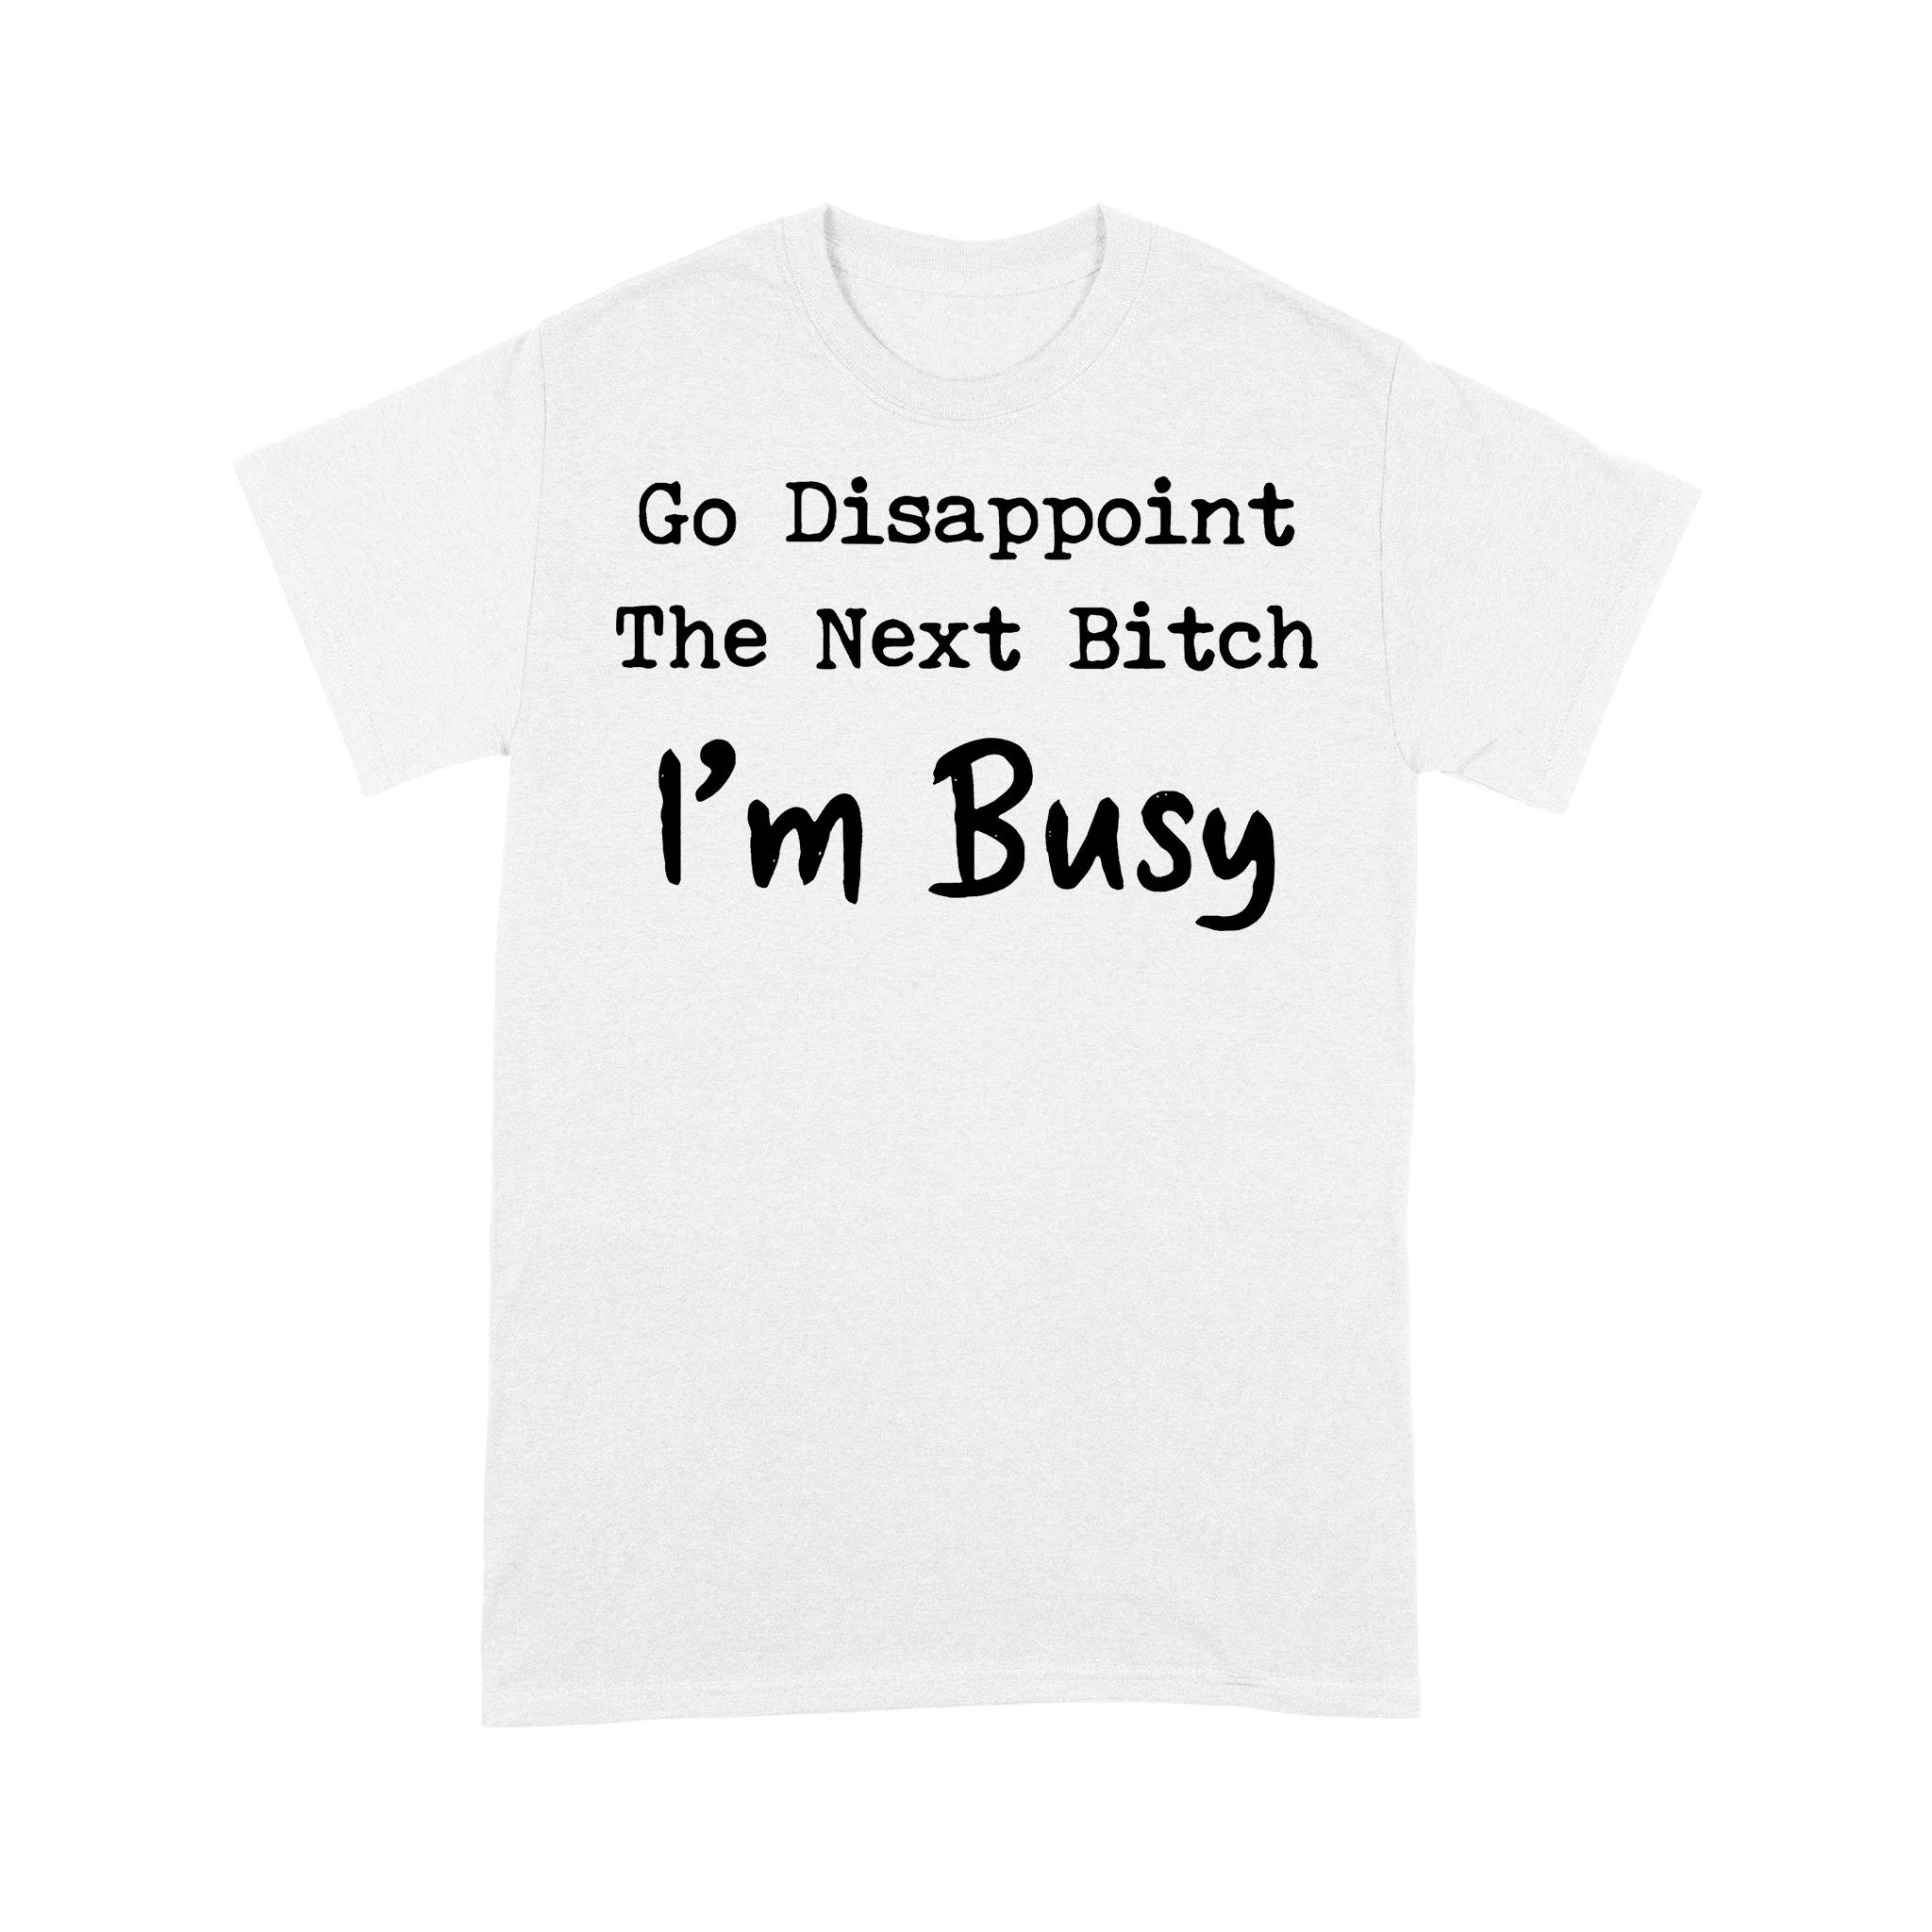 Go Disappoint The Next Bitch I'm Busy Funny T-shirt